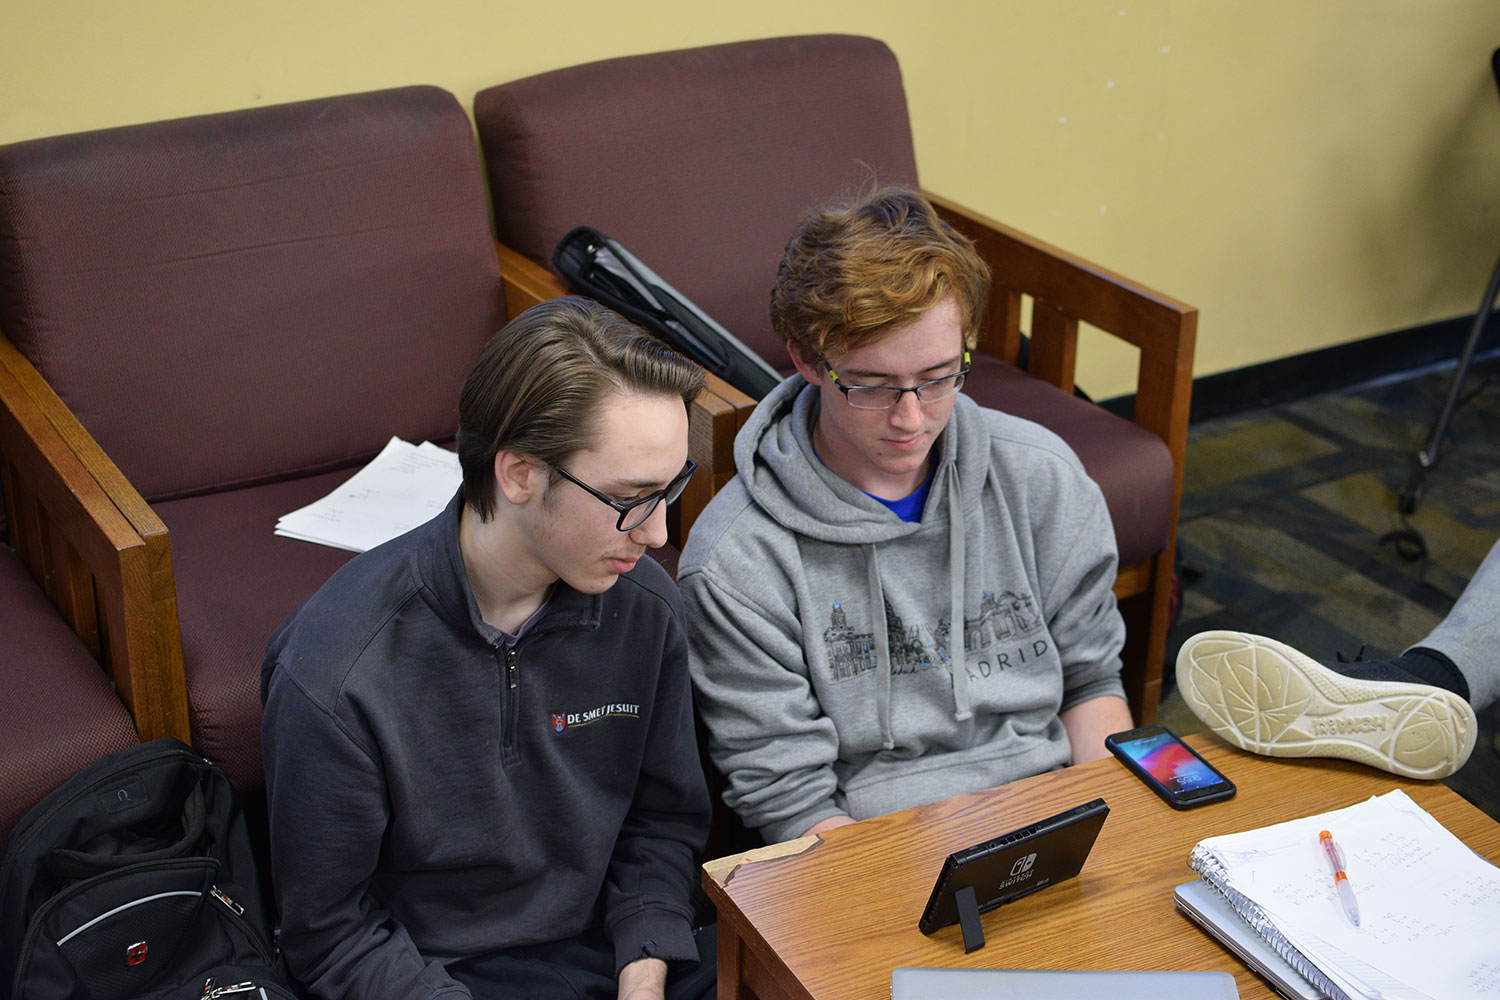 Taking a break from studying two students relax by playing the Nintendo Switch.